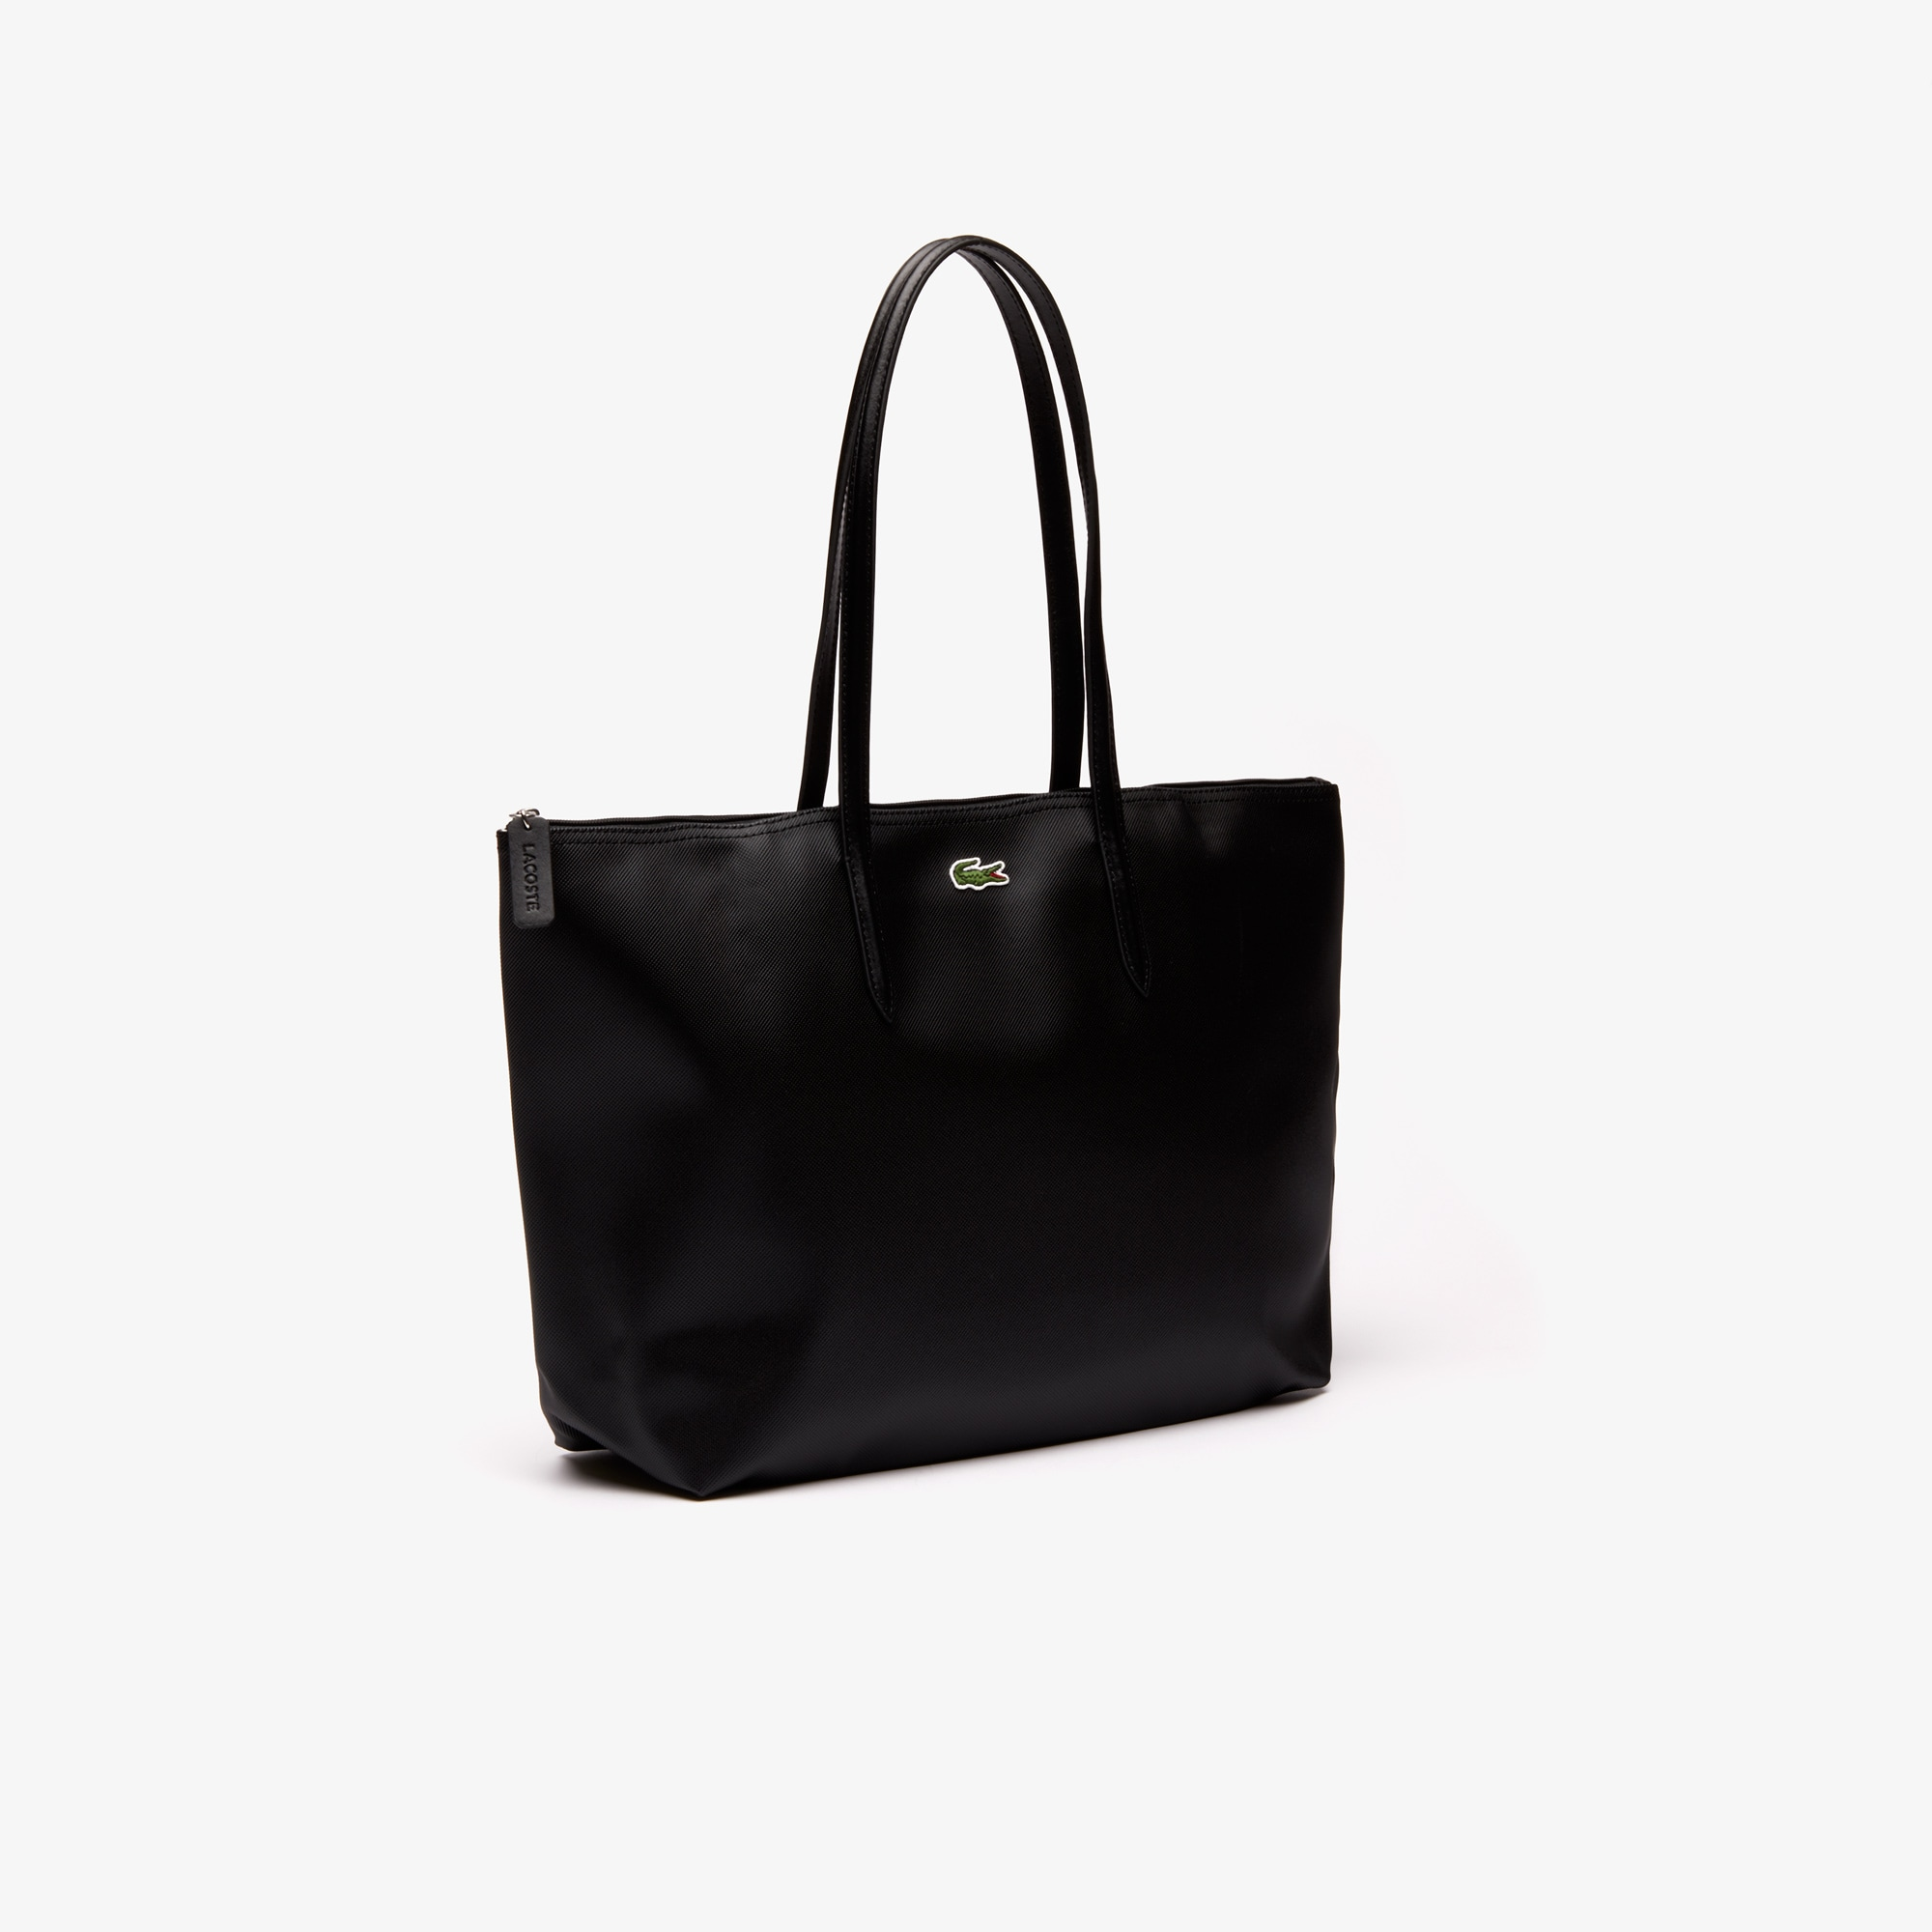 b3d62e72e260 Women s L.12.12 Tote Bag